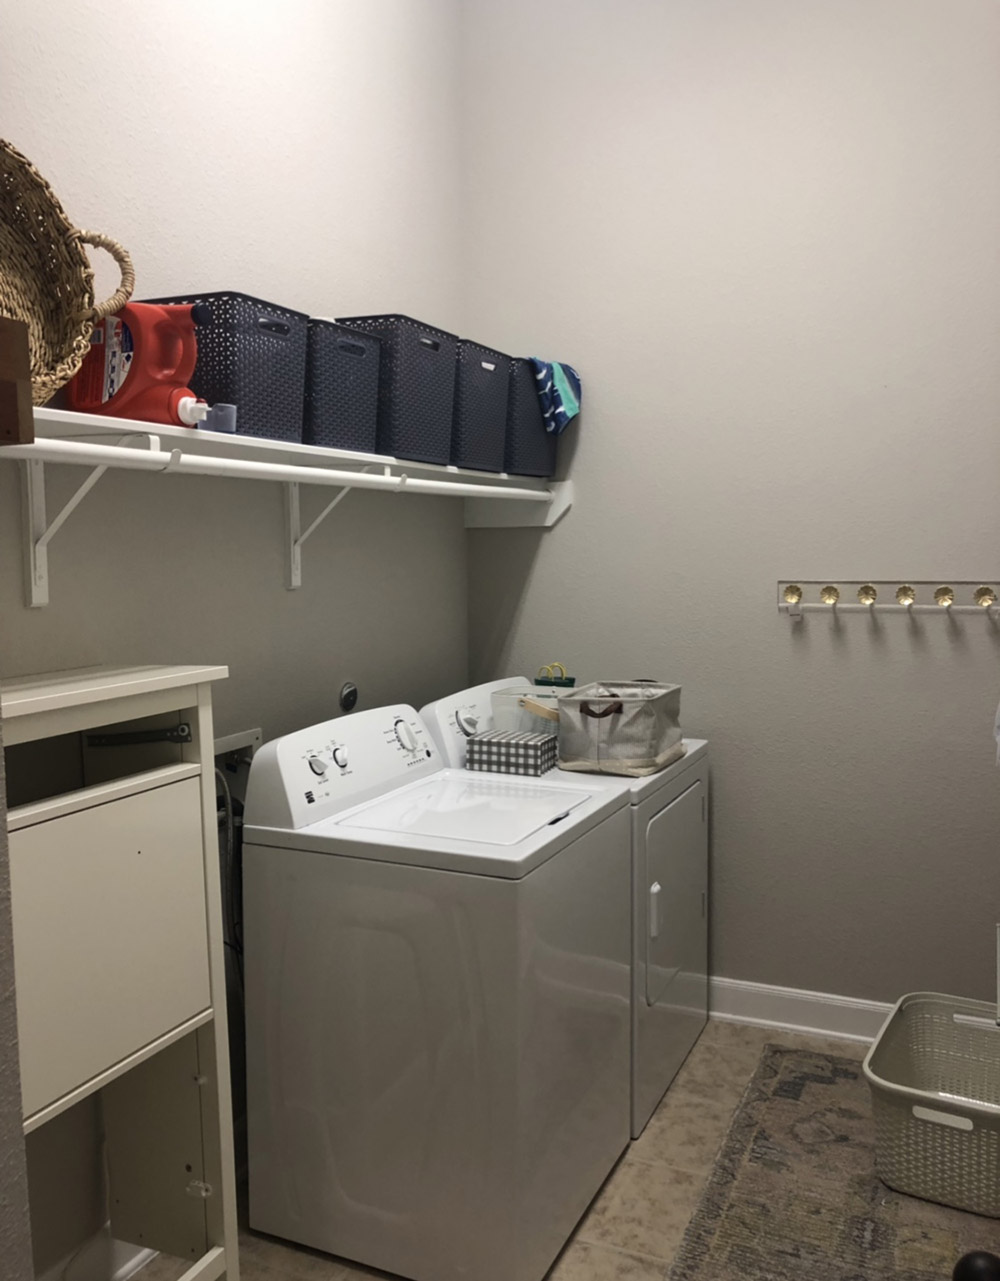 A plain laundry room with only one wall shelf.